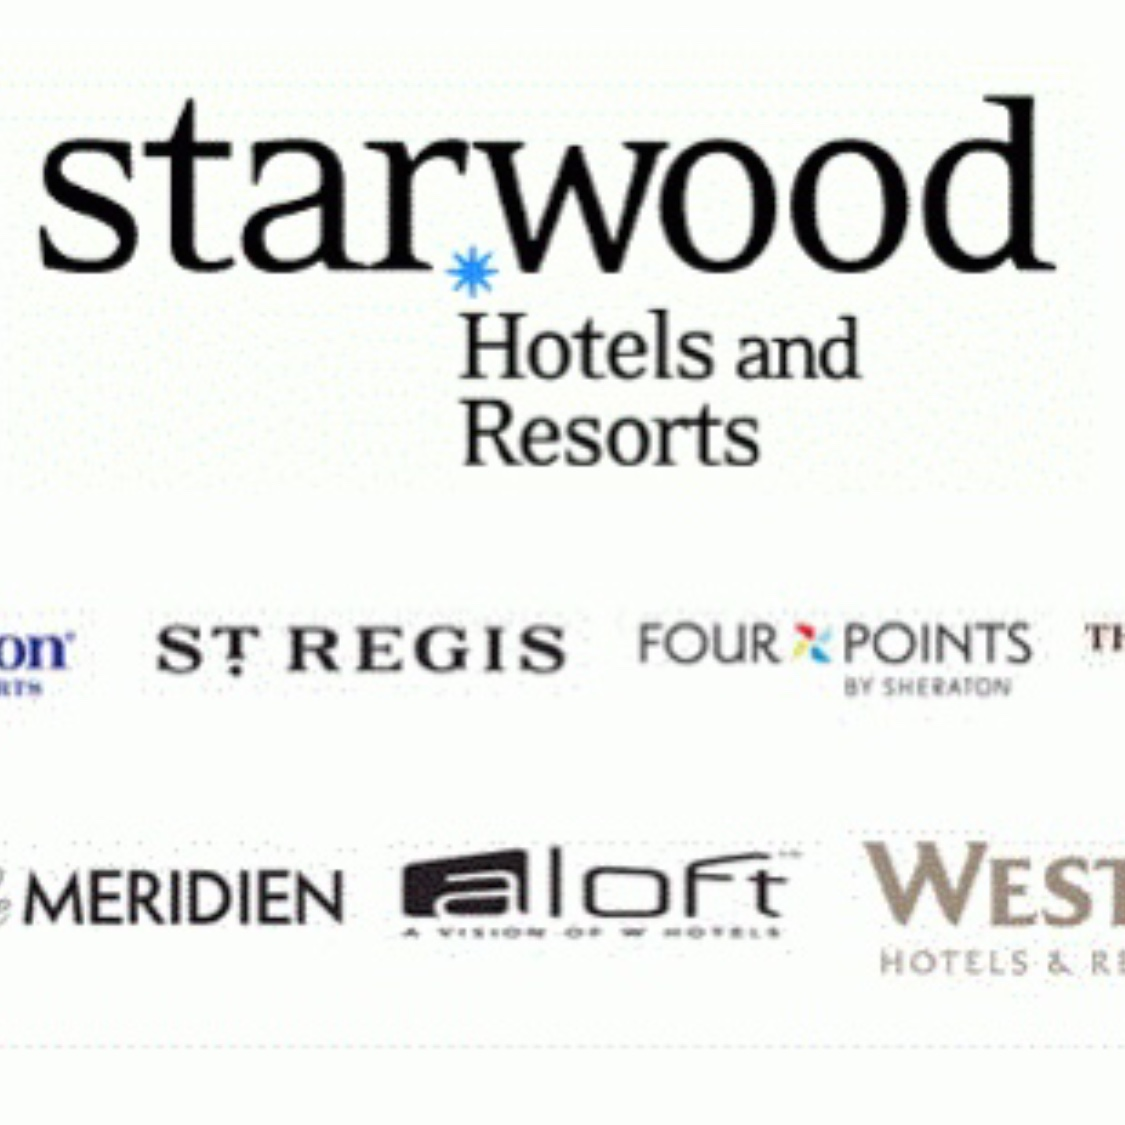 starwood_为阿航skywards常旅客计划和喜达屋spg(starwood preferred gue 图片